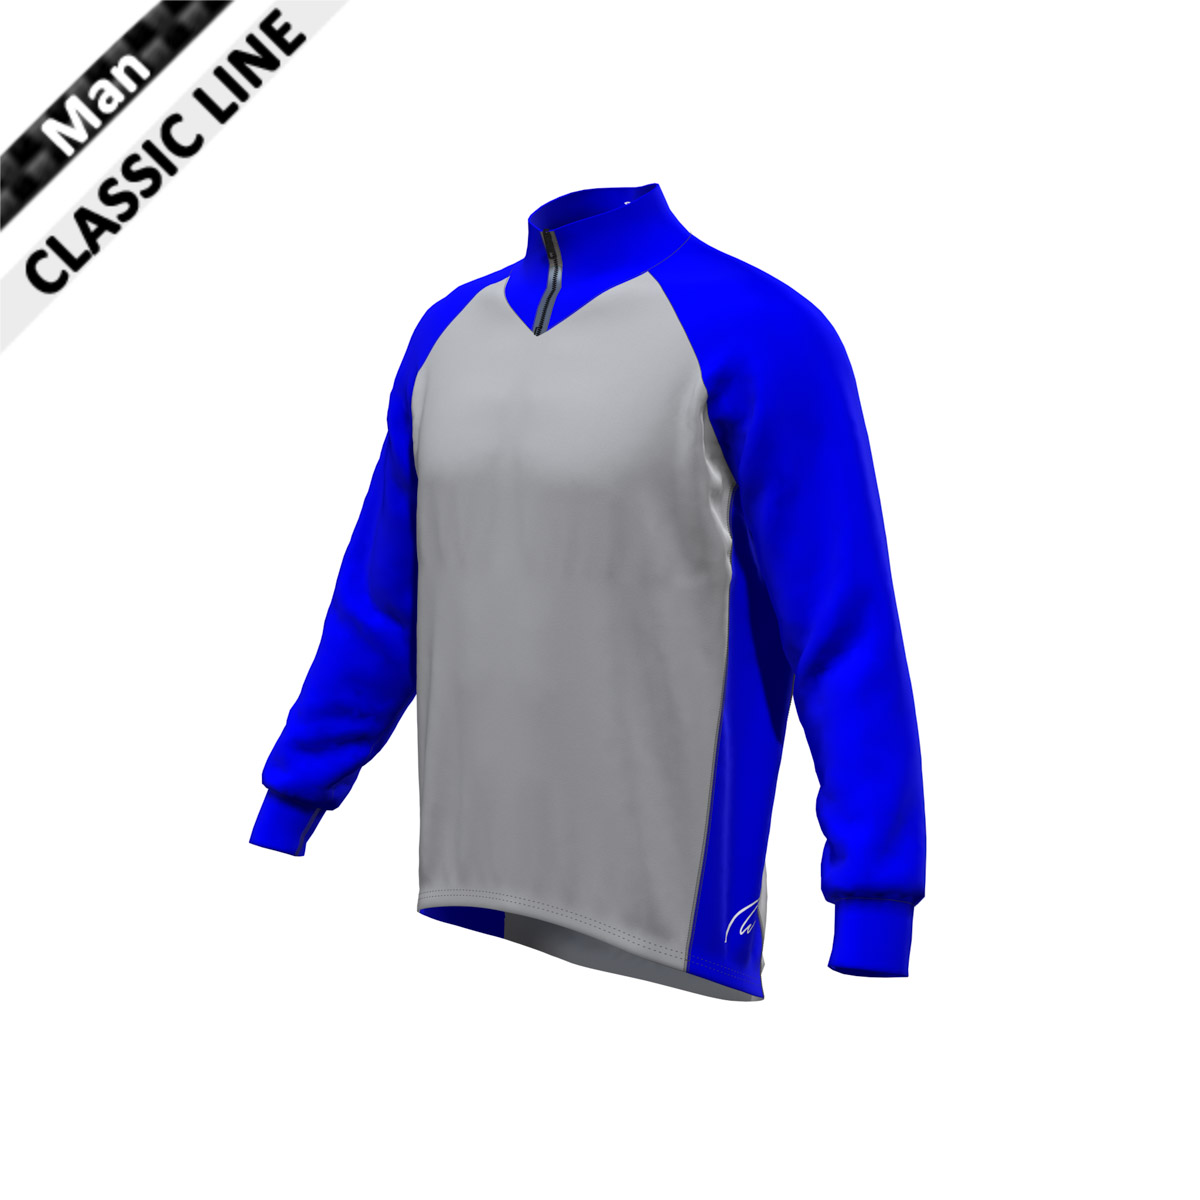 Tasmania Gamex Jacket - royal blau